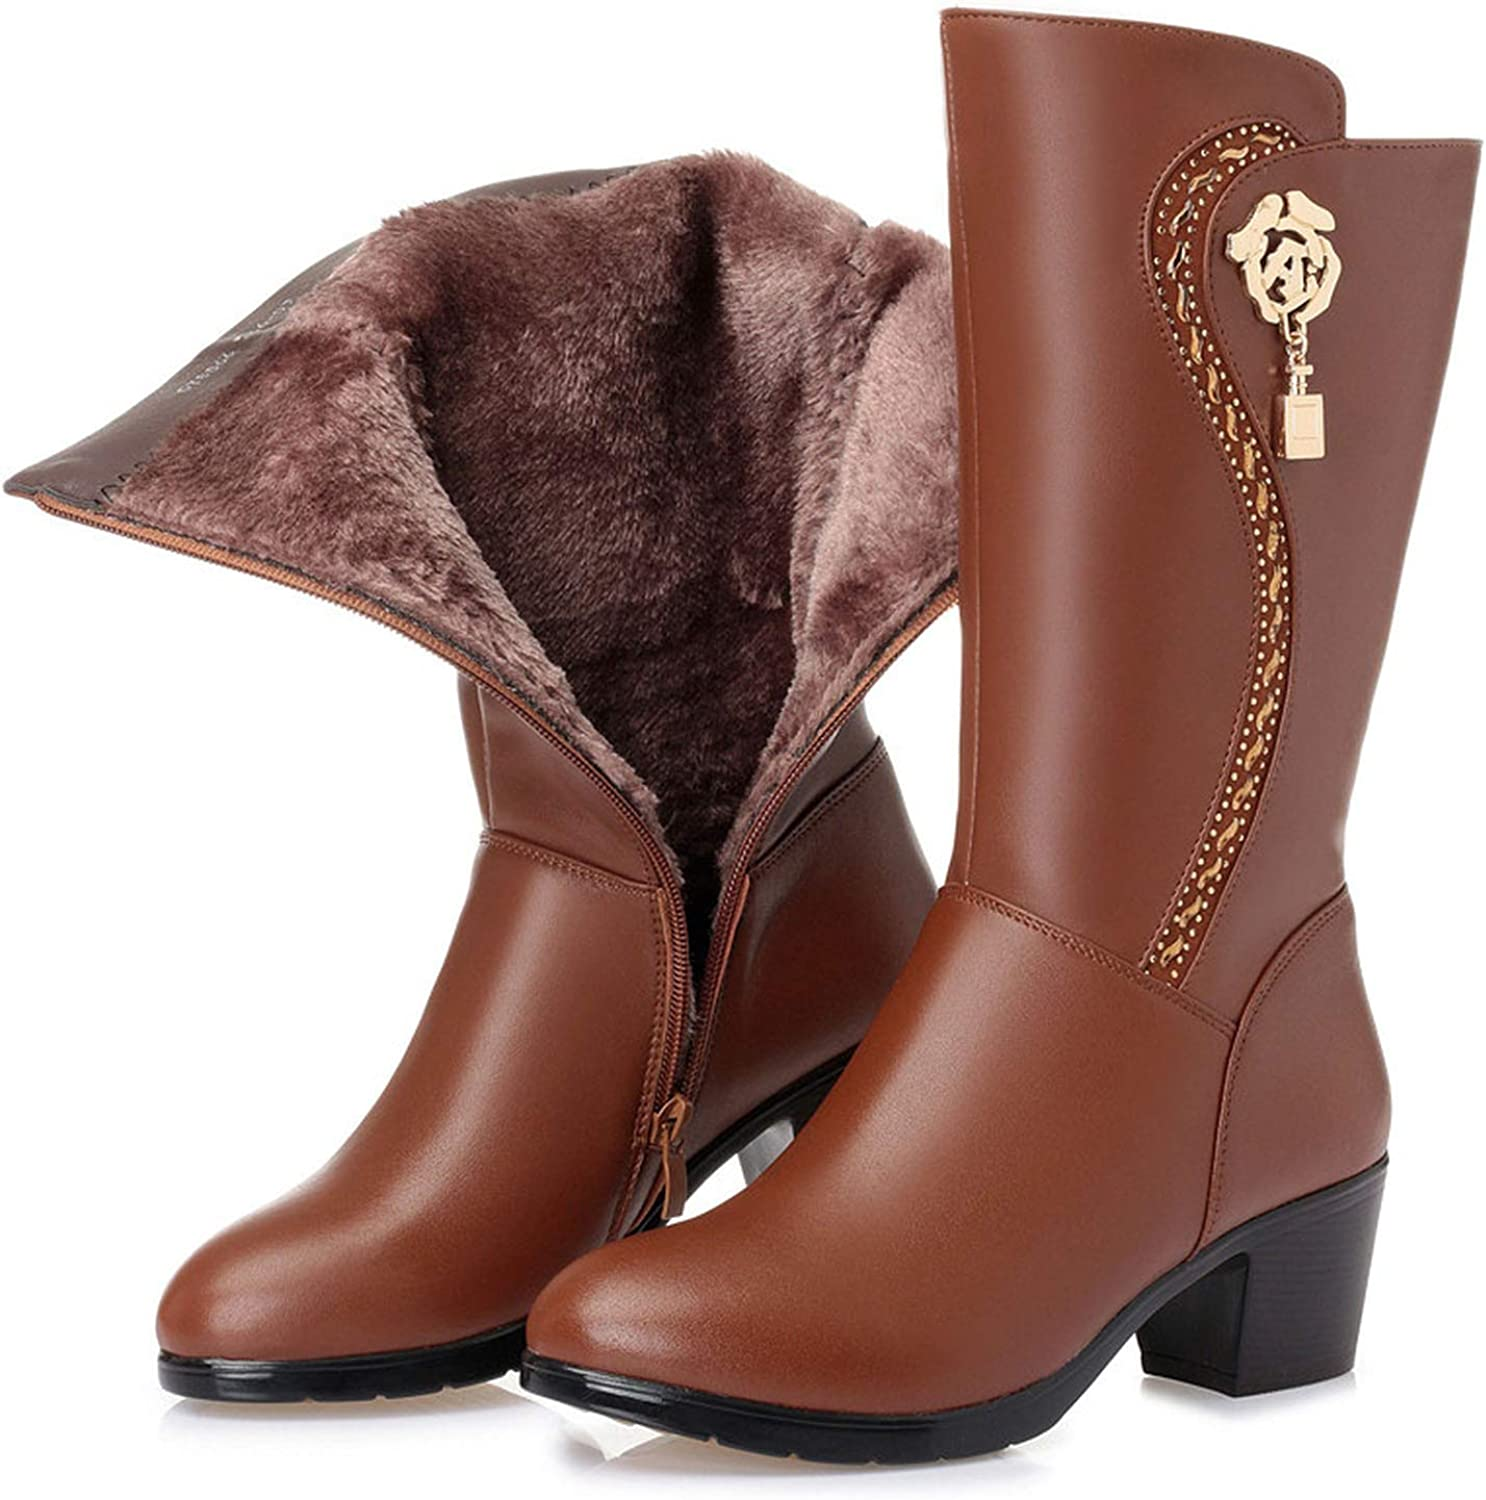 This is not a harm. 2018 New Genuine Leather Women's Wool Boots Thick Warm Winter Snow Motorcycle Boots,Cowhide,4.5